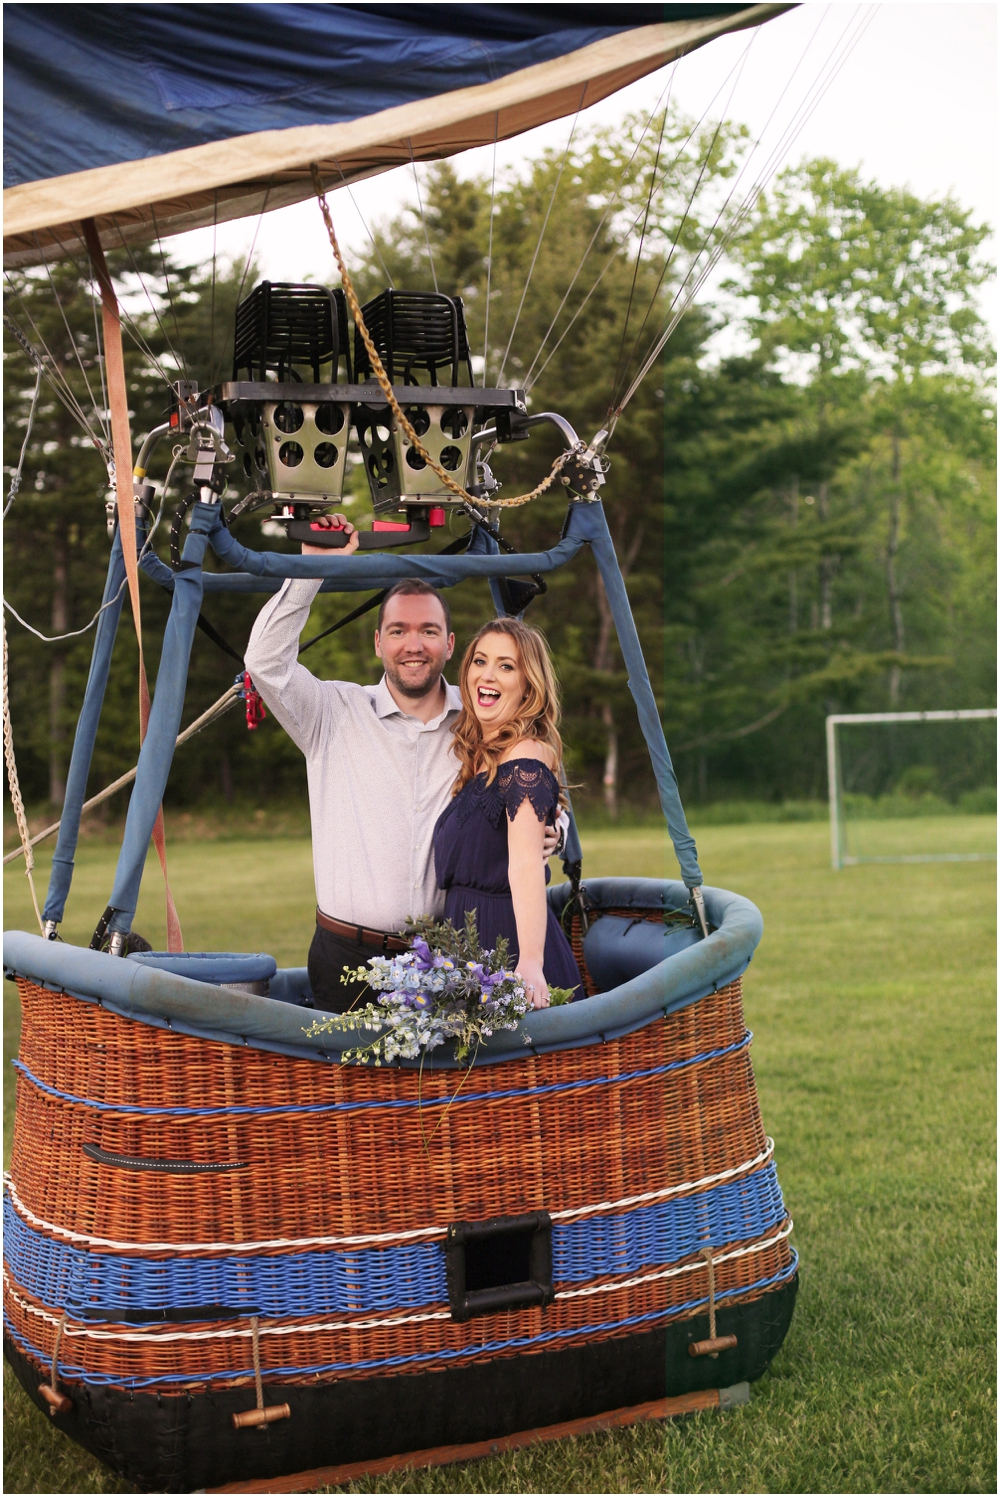 Mahone-Bay-Hot-Air-Balloon-Engagement-Session-Chantal-Routhier-Photography_0016.jpg